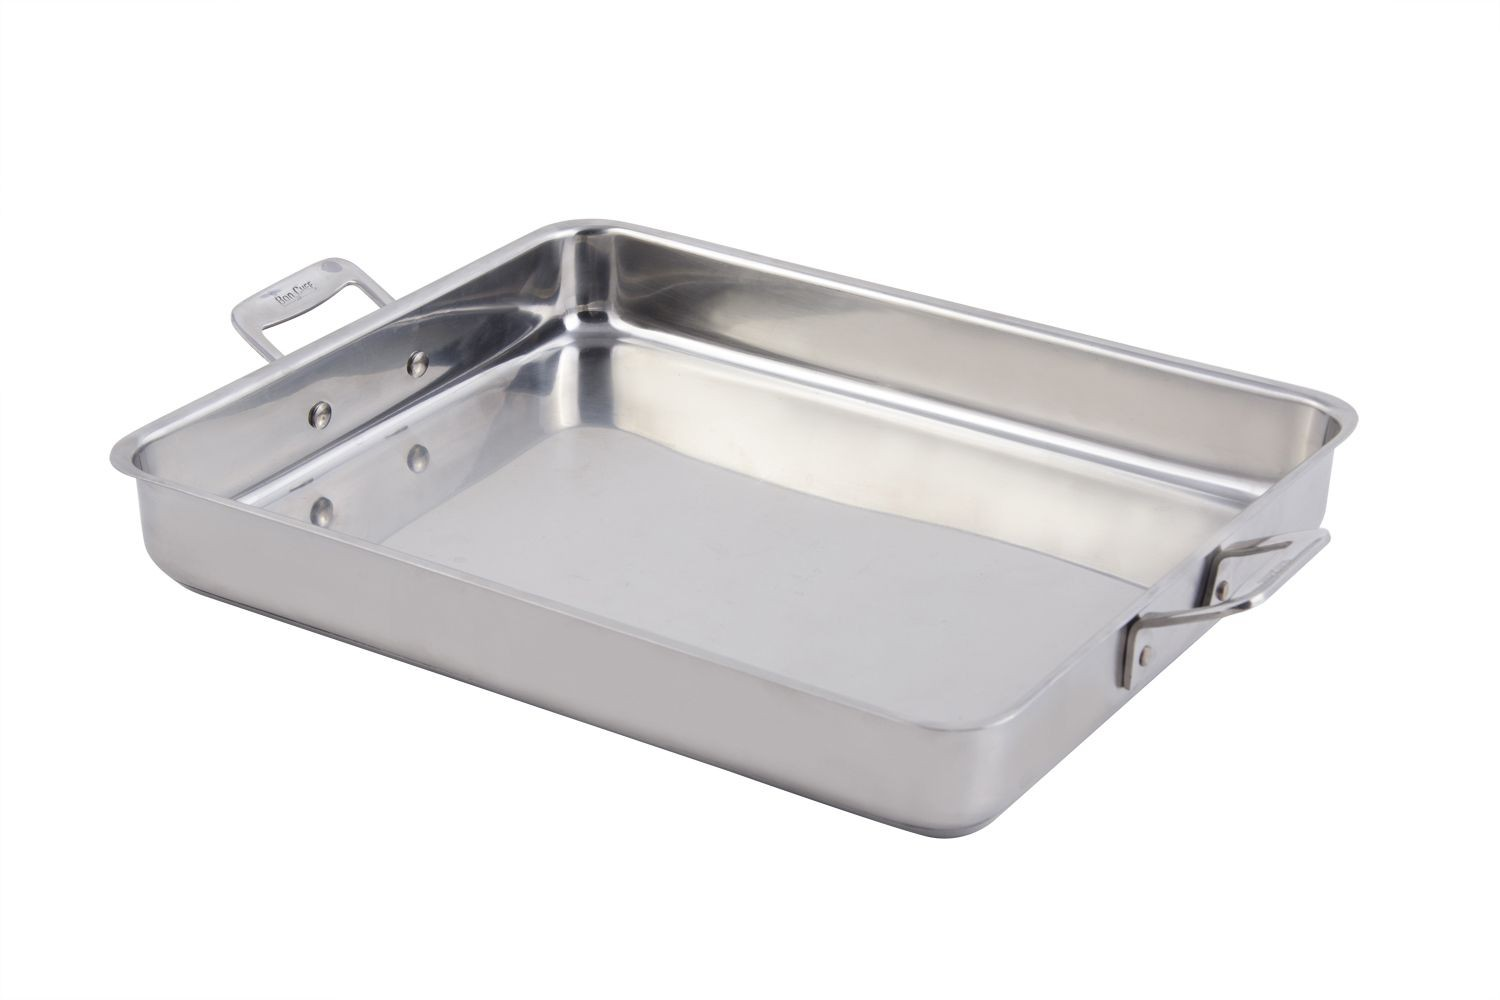 Bon Chef 60012CLD Cucina Large Stainless Steel Square Pan, 5 Qt.